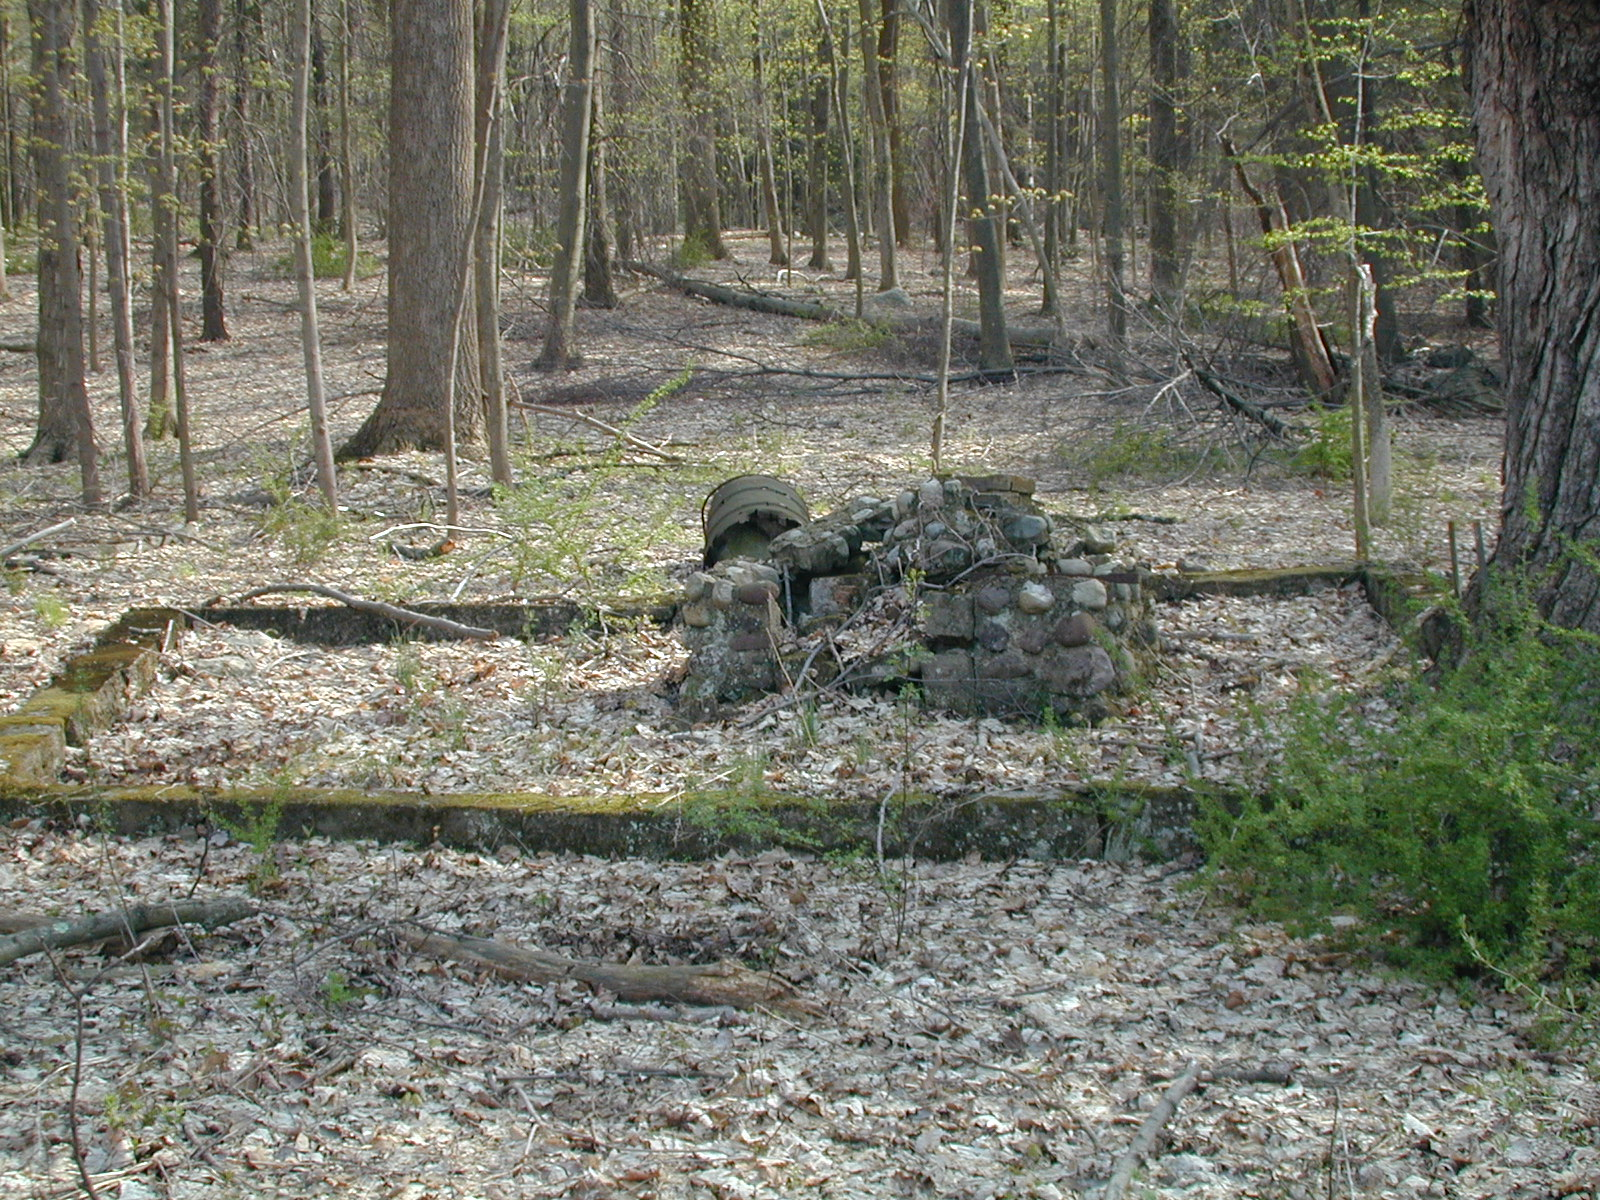 Ruins of picnic area near Donkey's Corners